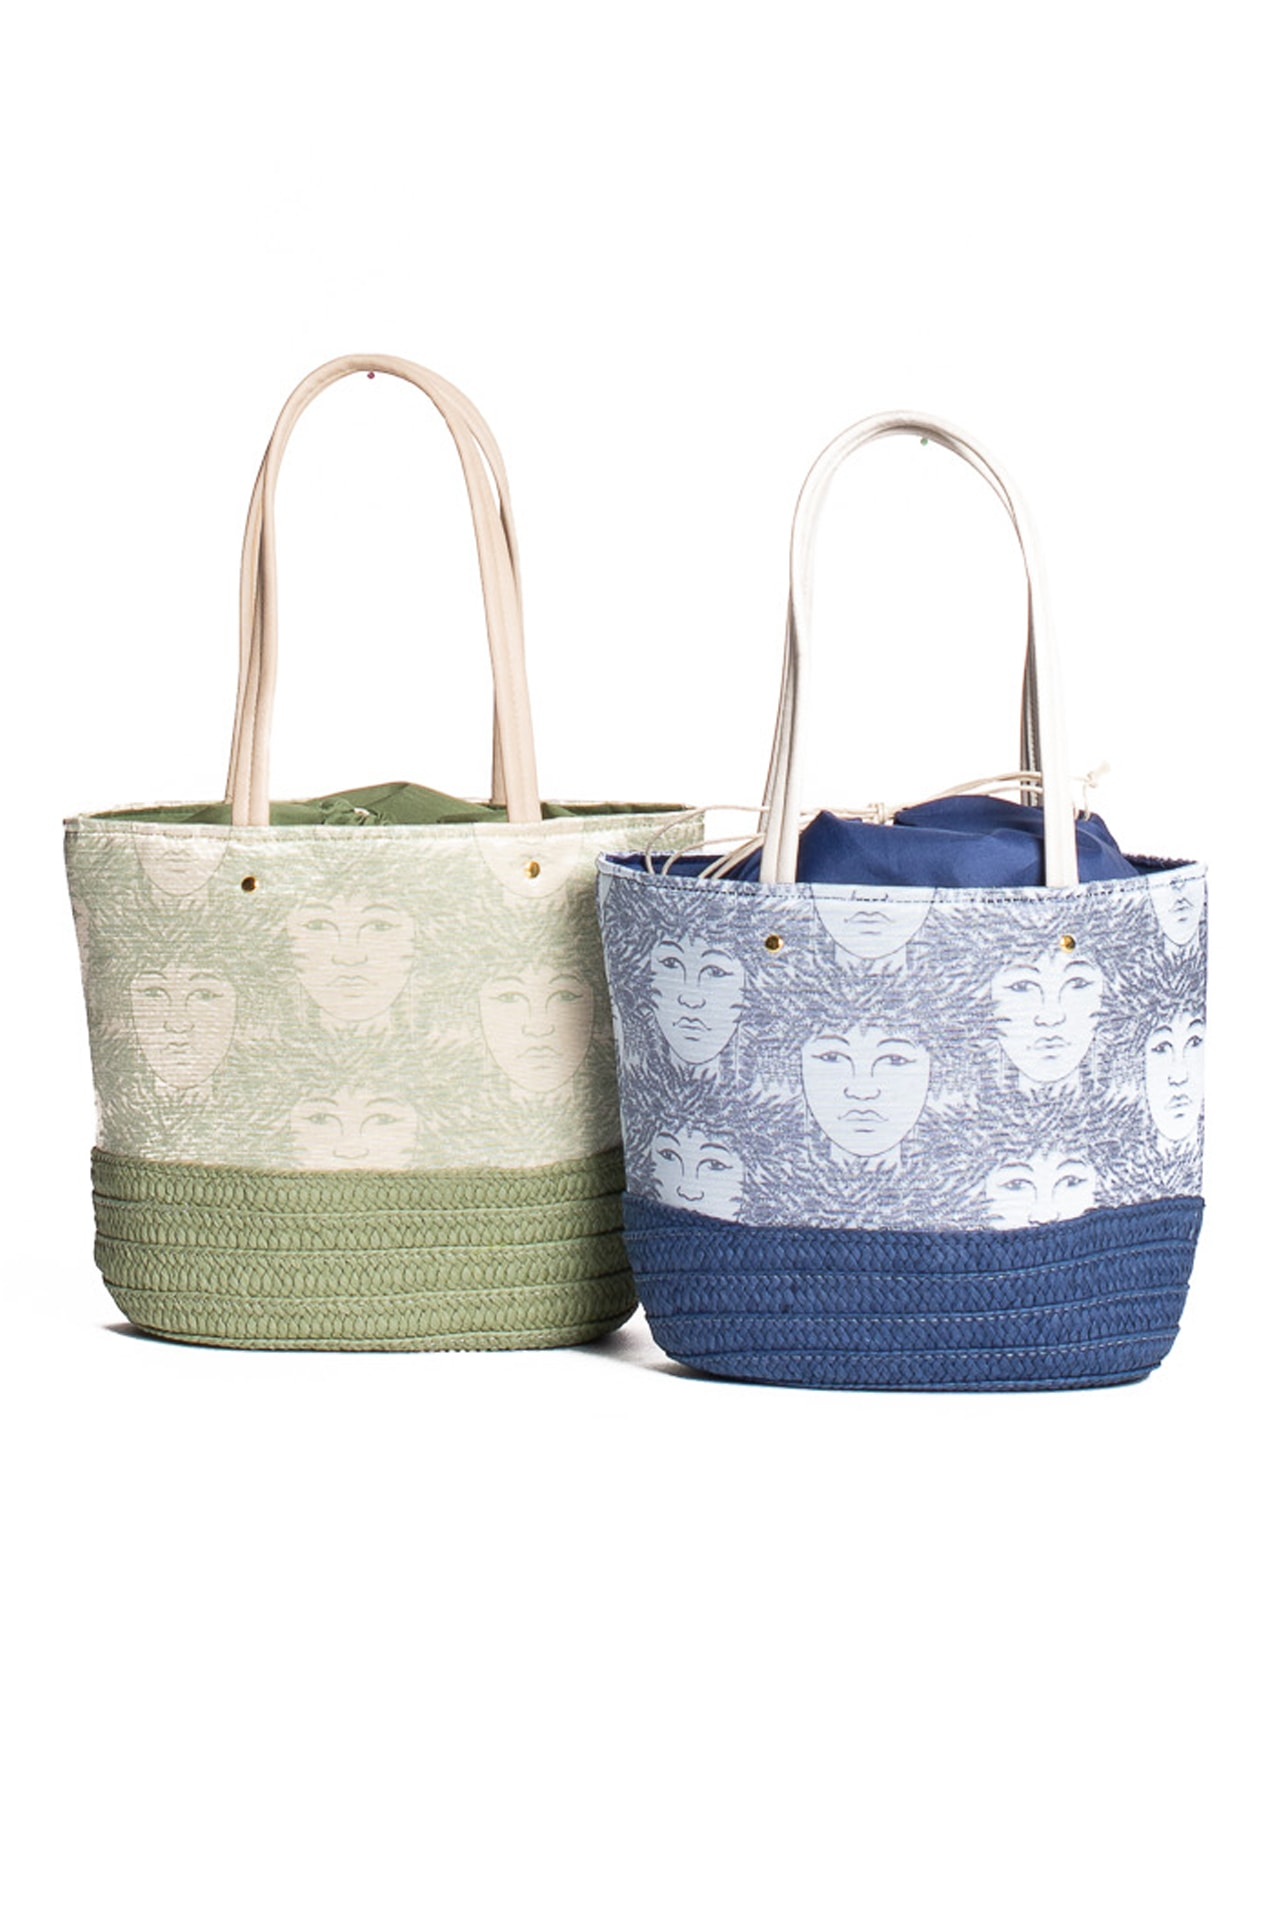 Akolea Tote in Green and Blue